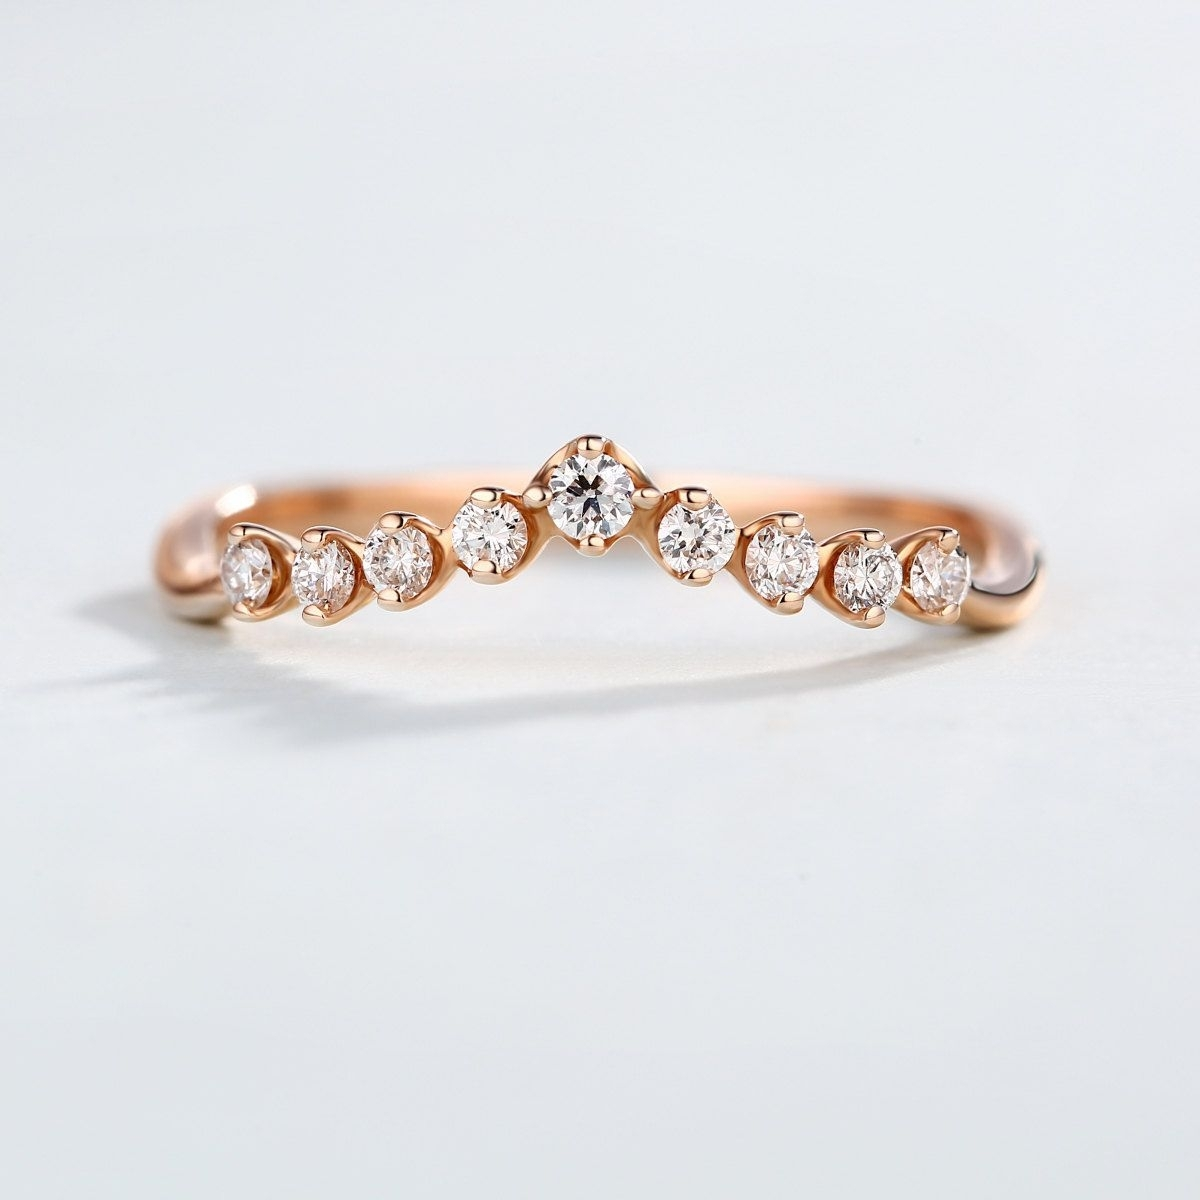 Curved Diamond Ring, Wedding Band 14K Rose Gold Ring Chevron Ring Intended For 2017 Chevron Eternity Rings (Gallery 3 of 15)